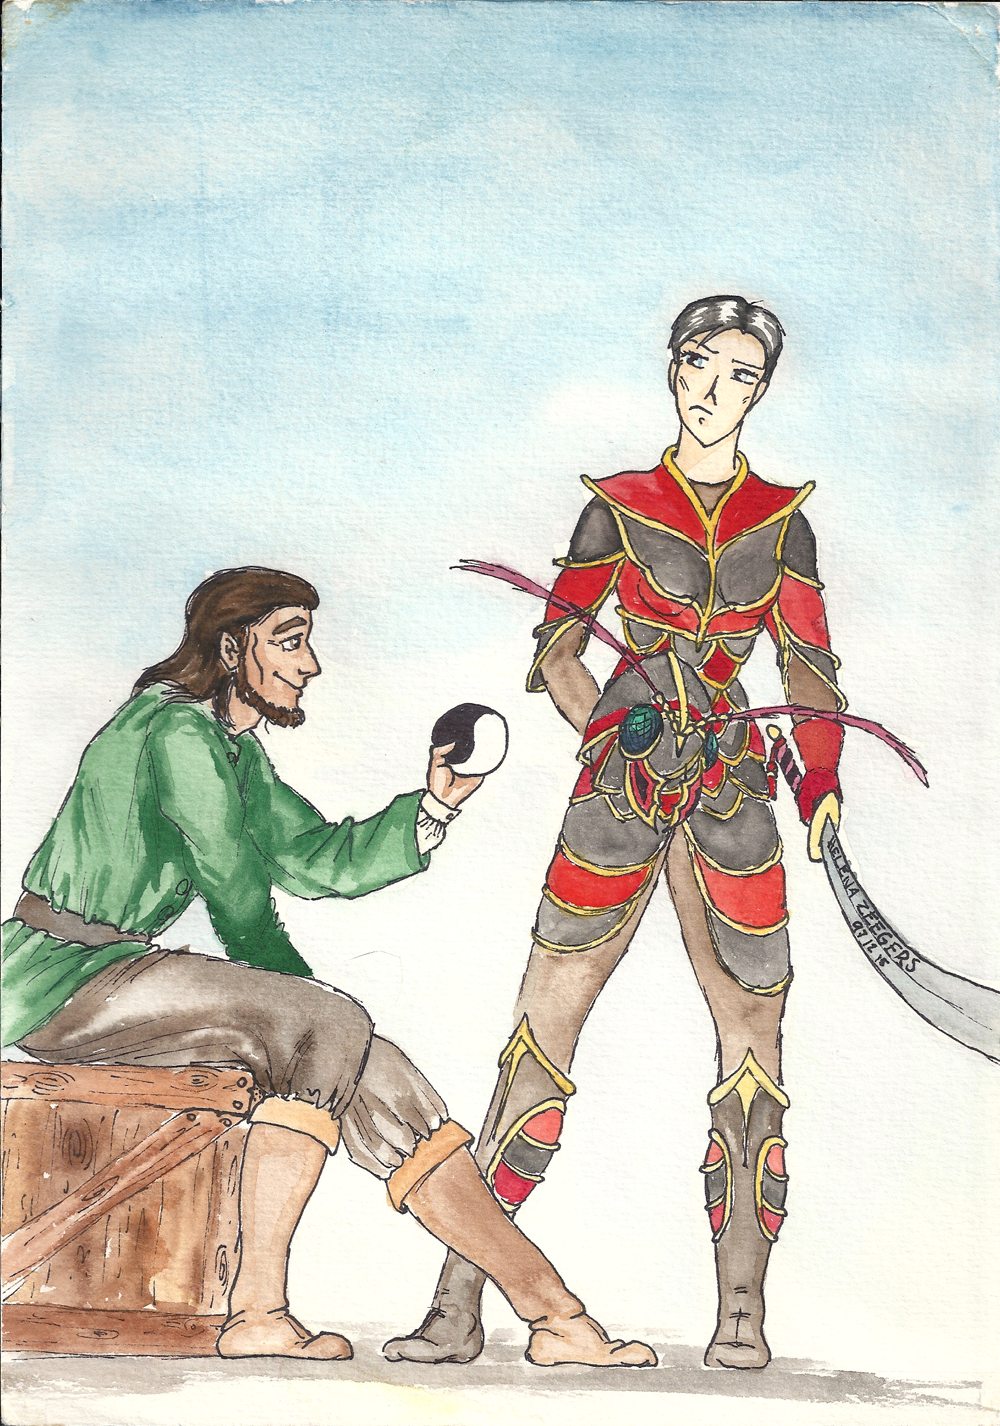 Egeanin and bayle domon by coplins on deviantart for Domon the wheel of time